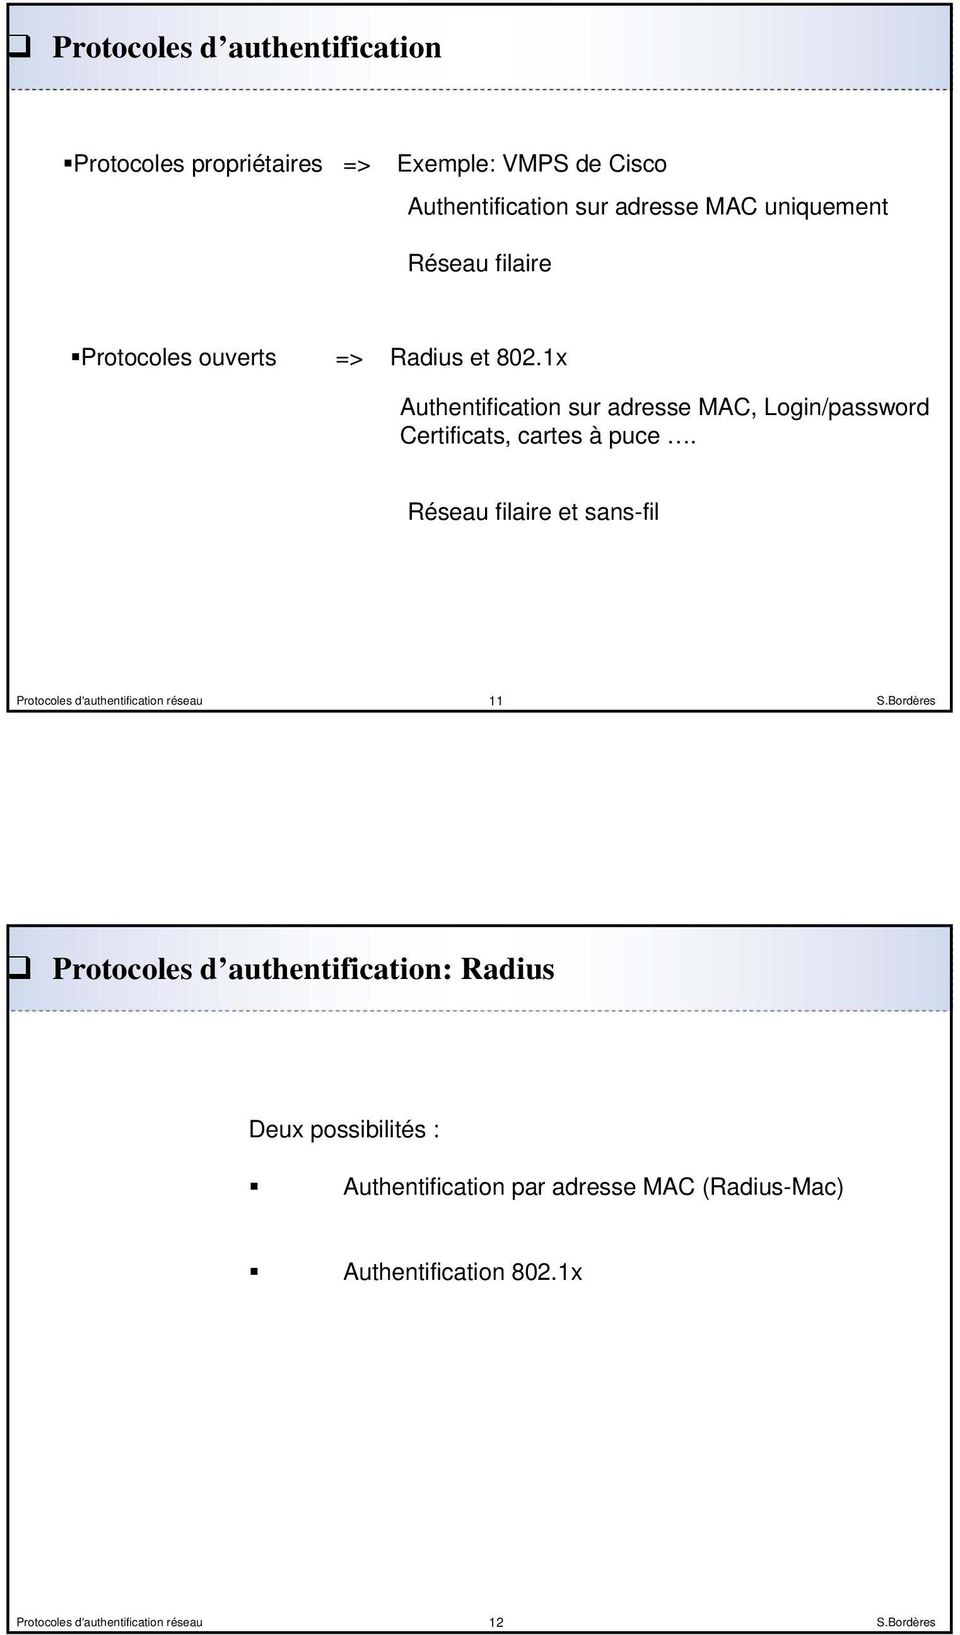 1x Authentification sur adresse MAC, Login/password Certificats, cartes à puce.